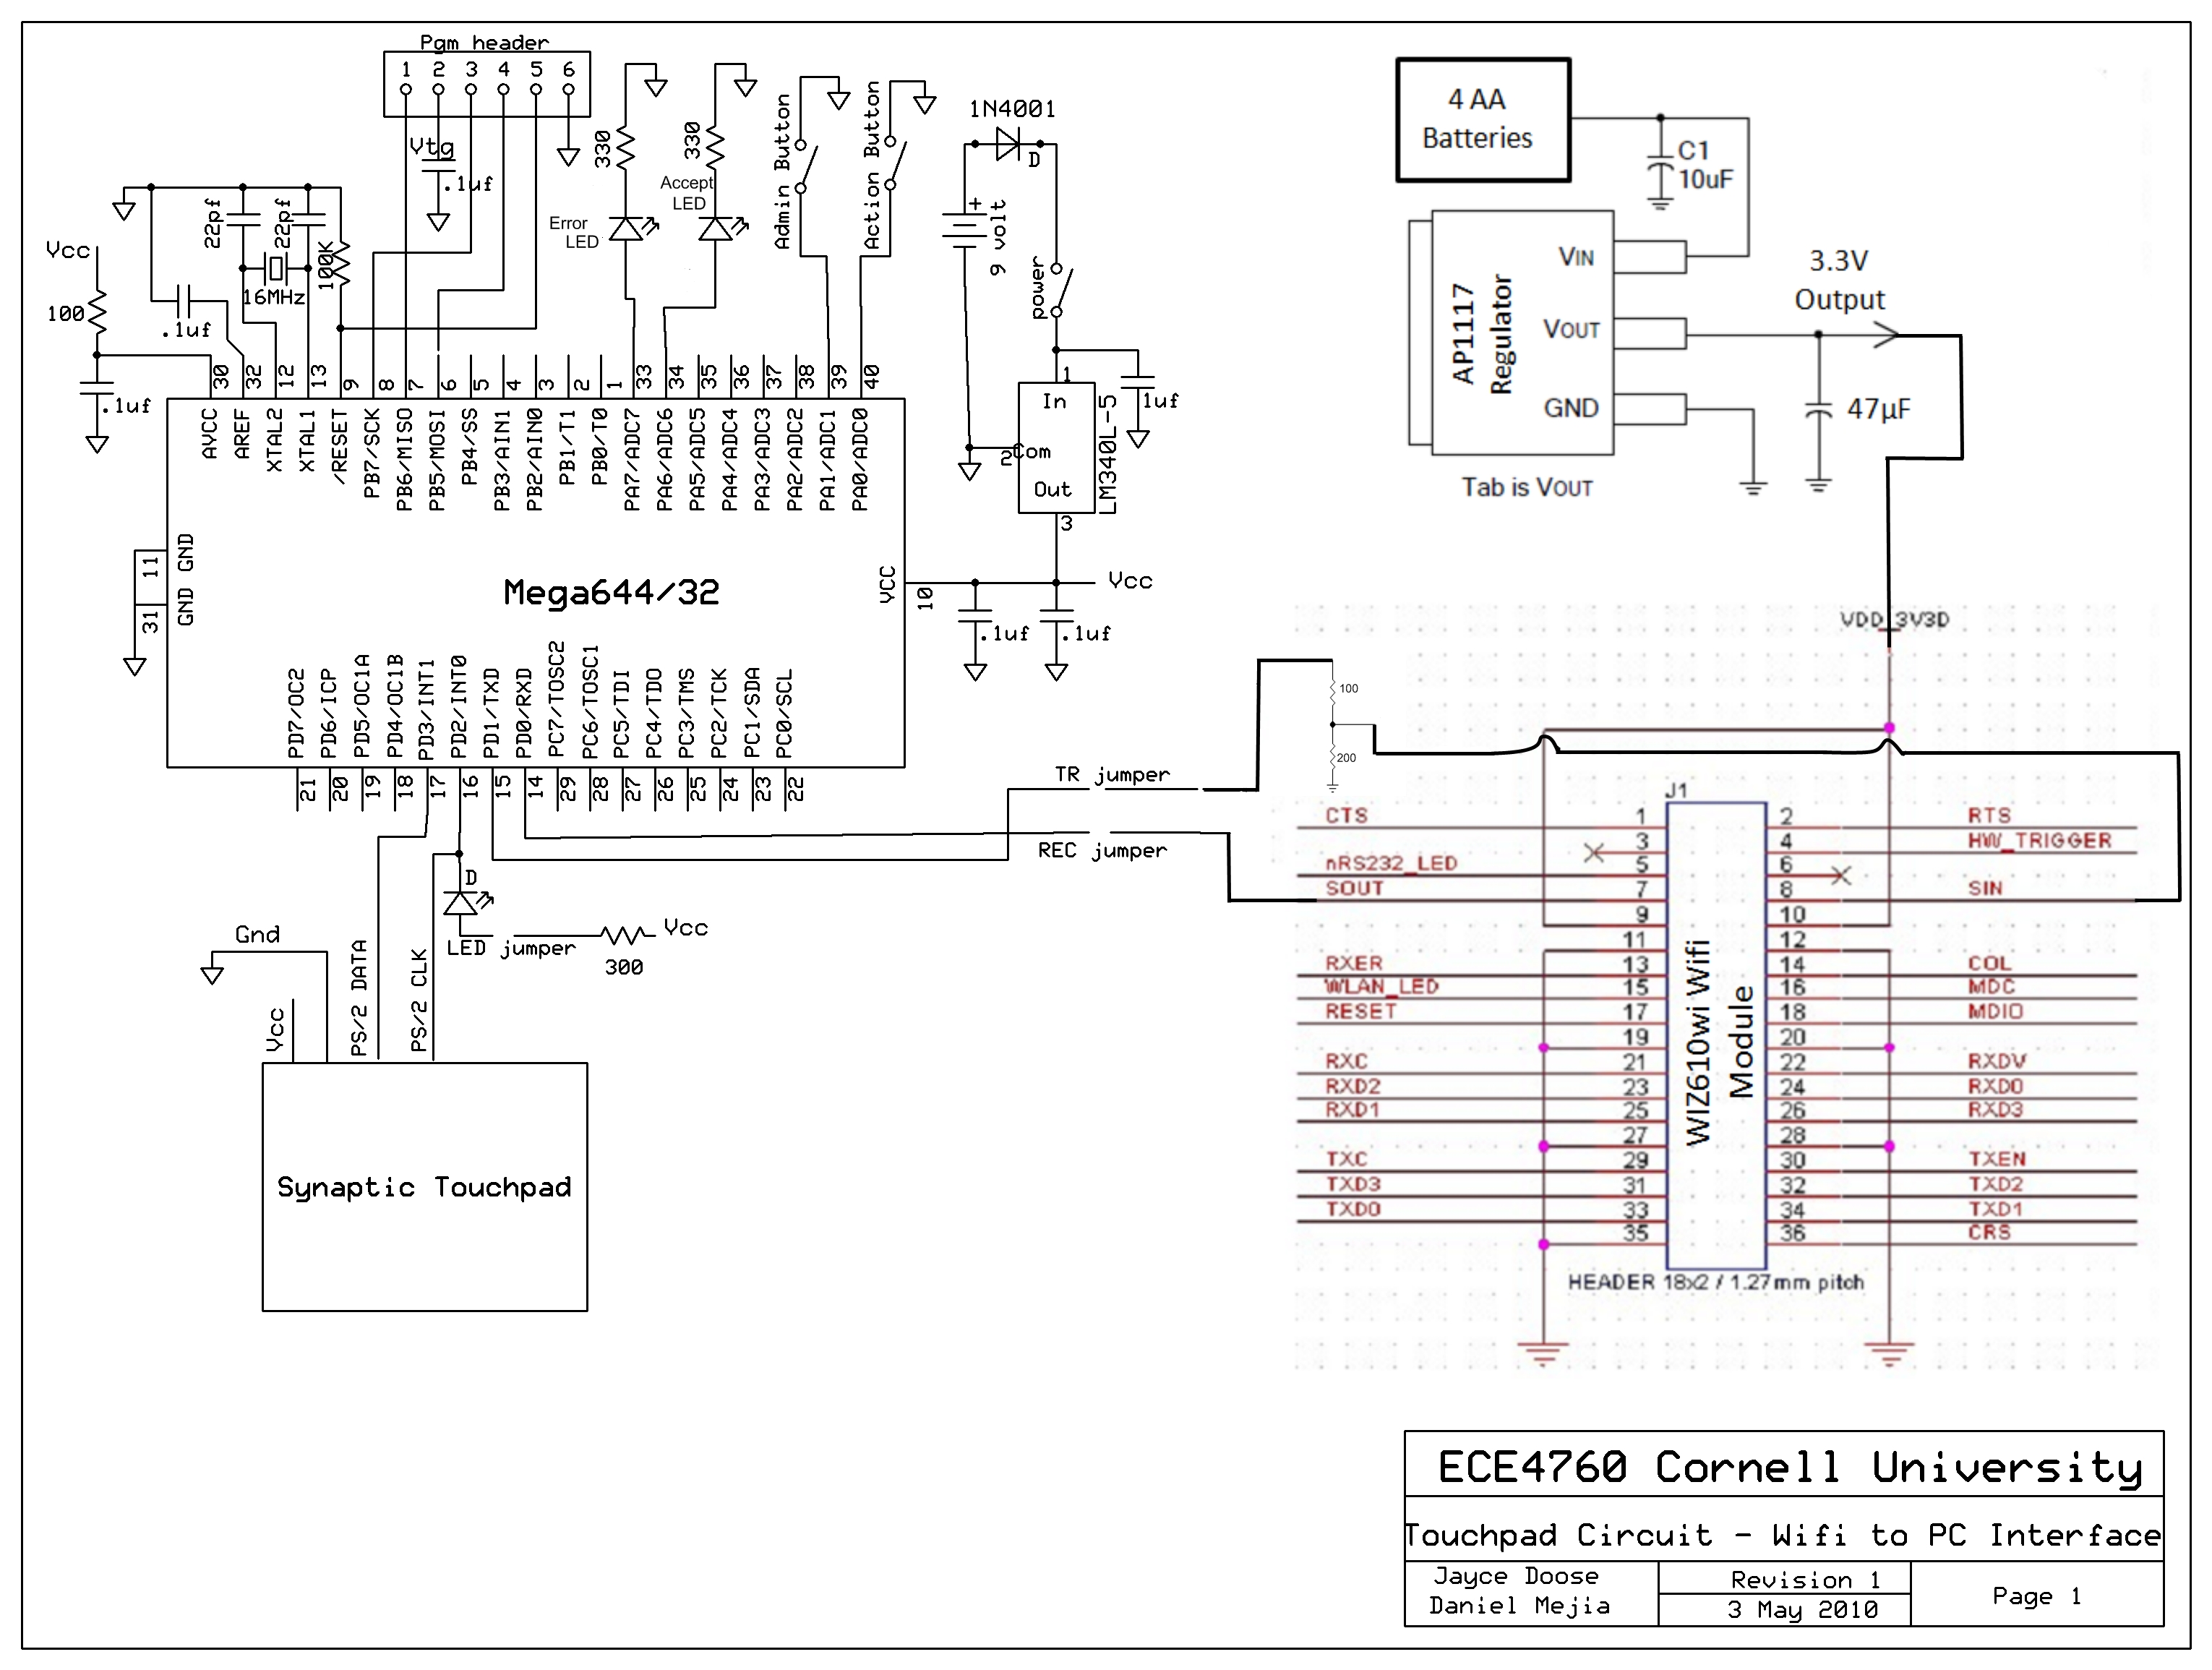 wireless usb port schematic electrical drawing wiring diagram u2022 rh asuransiallianz co USB Port Connection Diagram USB Plug Schematic